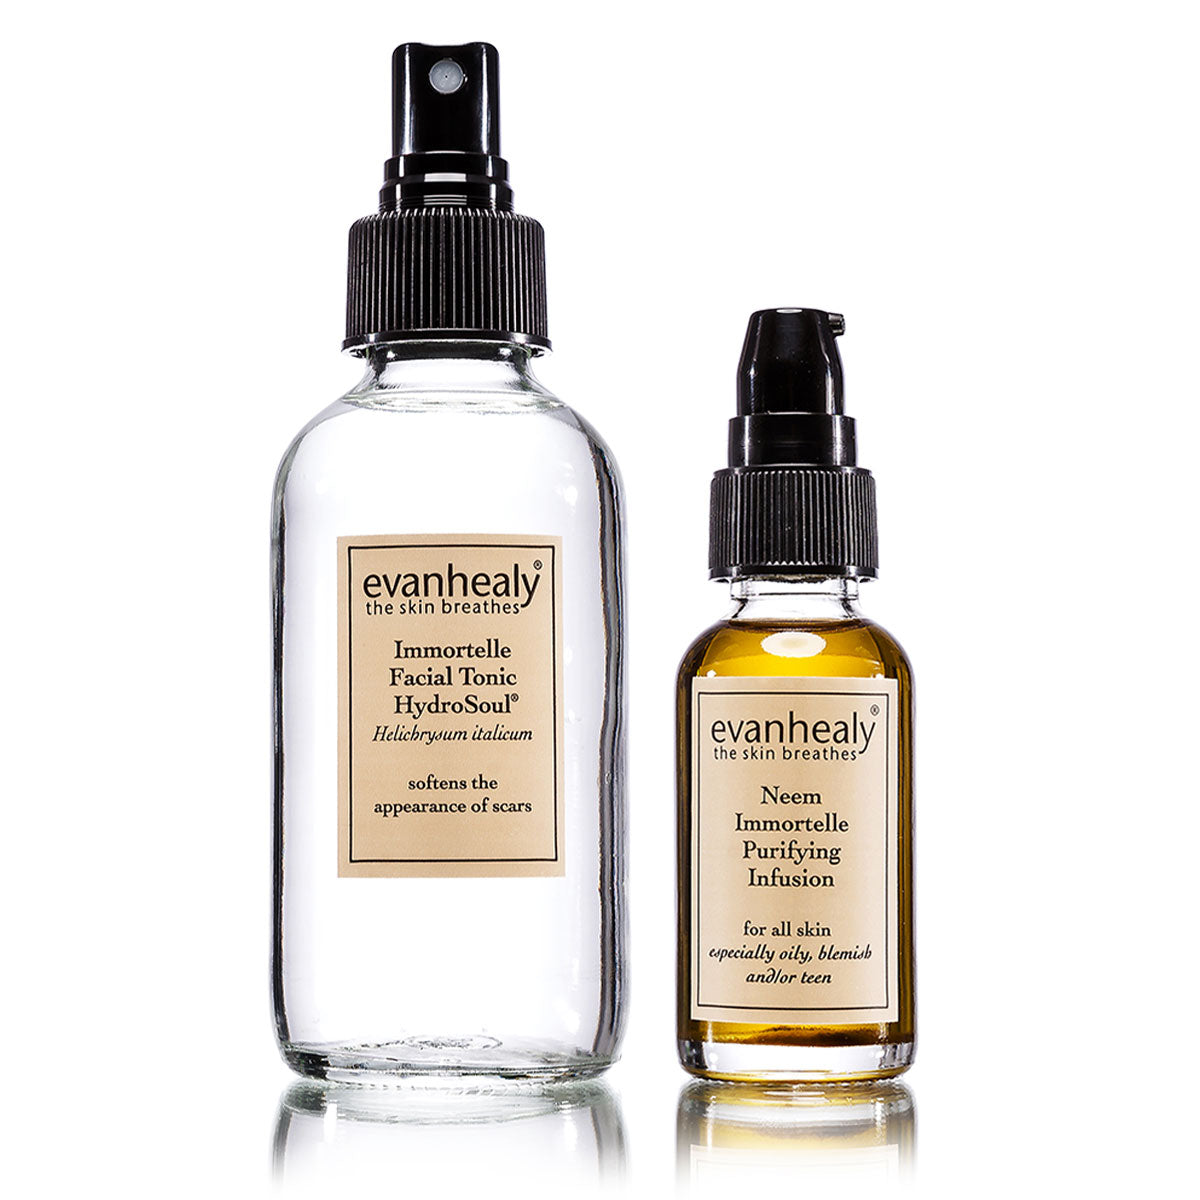 evanhealy Immortelle Facial Tonic HydroSoul and Neem Immortelle Purifying Infusion